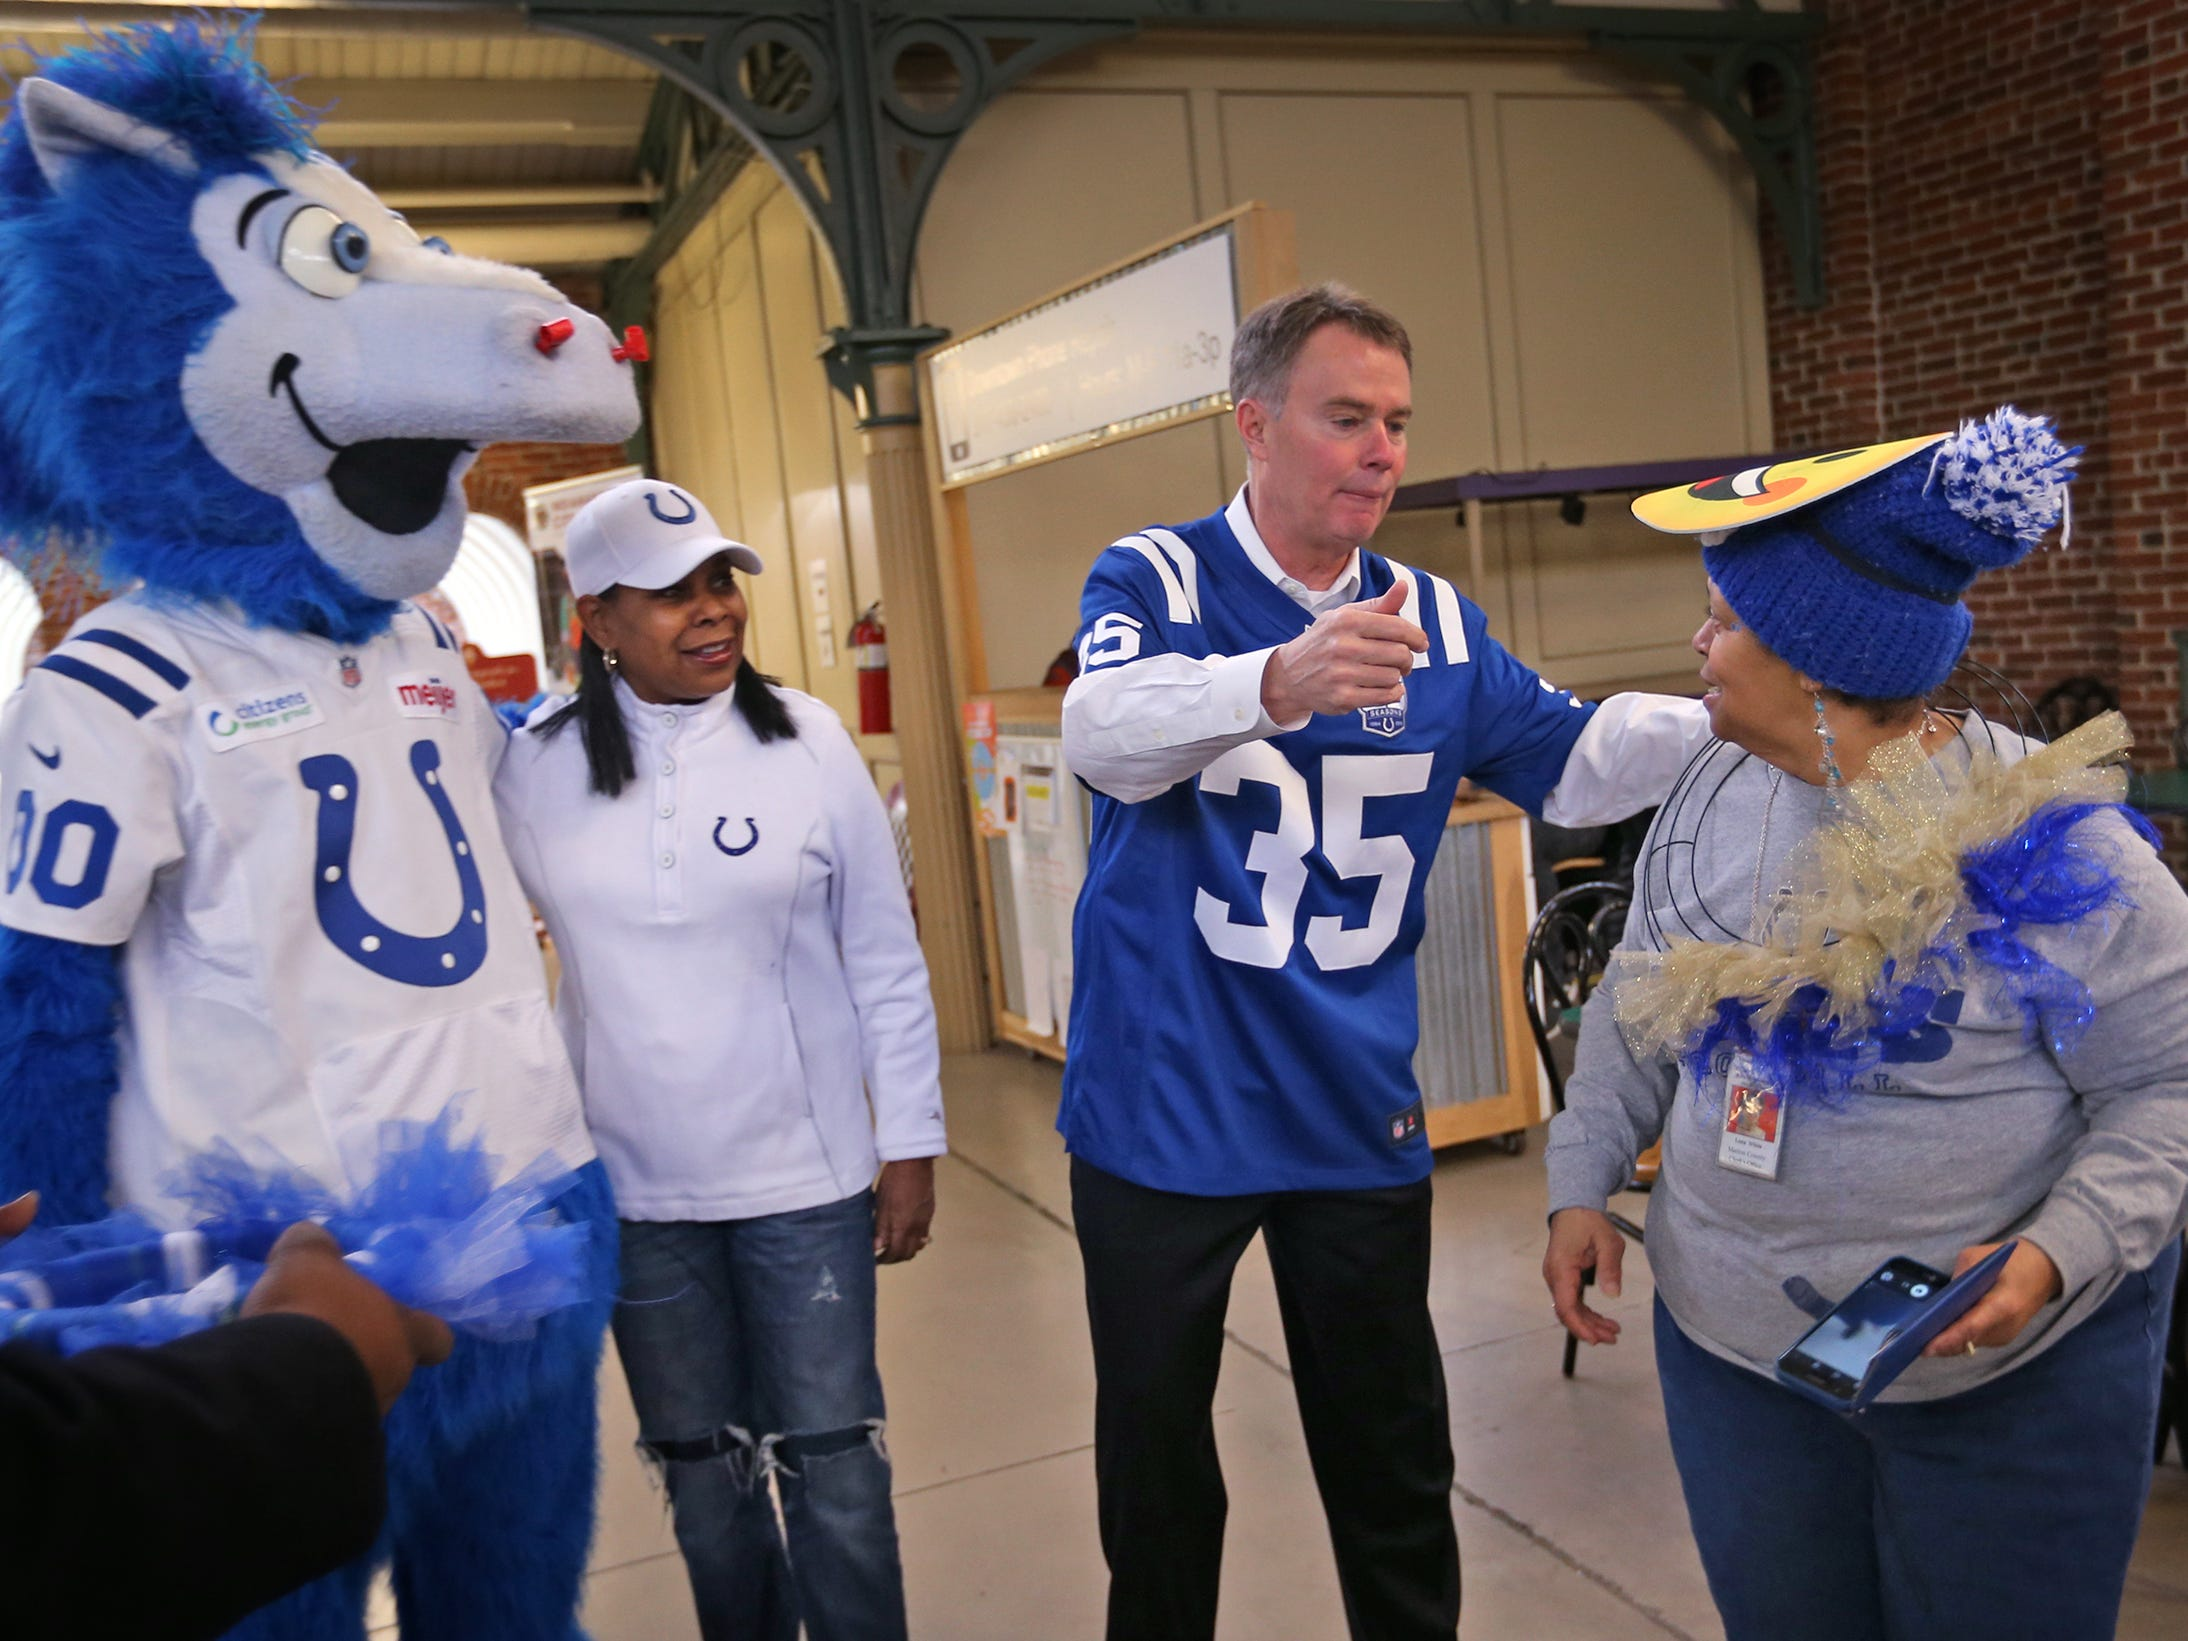 Lonna White, right, gets a hug from Mayor Joe Hogsett as Colts mascot Blue, and Cheryl McClendon look on. Fans had the opportunity to sign a 1-0 banner for the Colts at City Market, Thursday, Jan. 10, 2019.  The banner will be displayed for the team to see at the airport as they head off to their Kansas City playoff game.